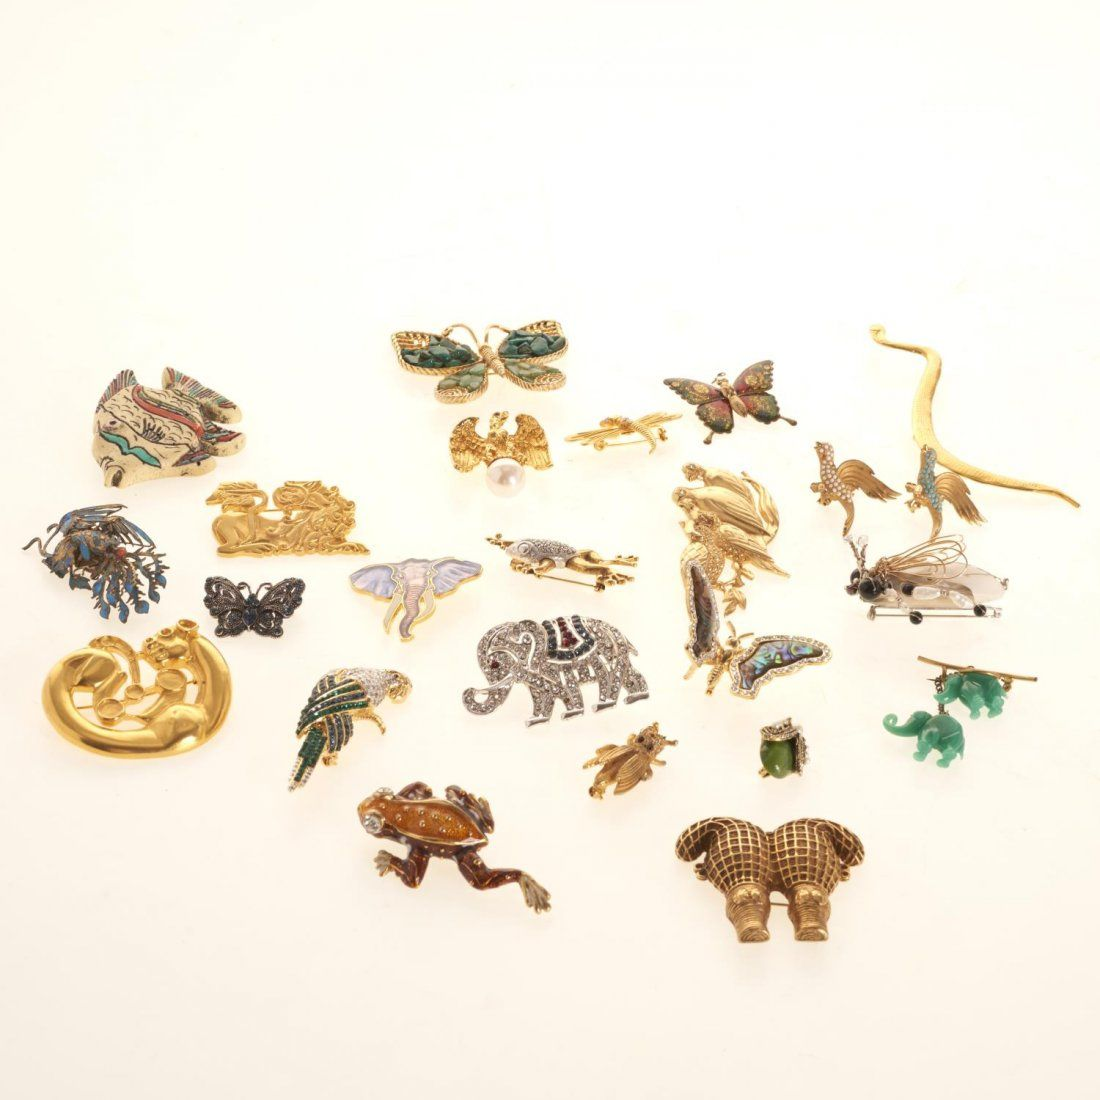 Animal and insect brooches